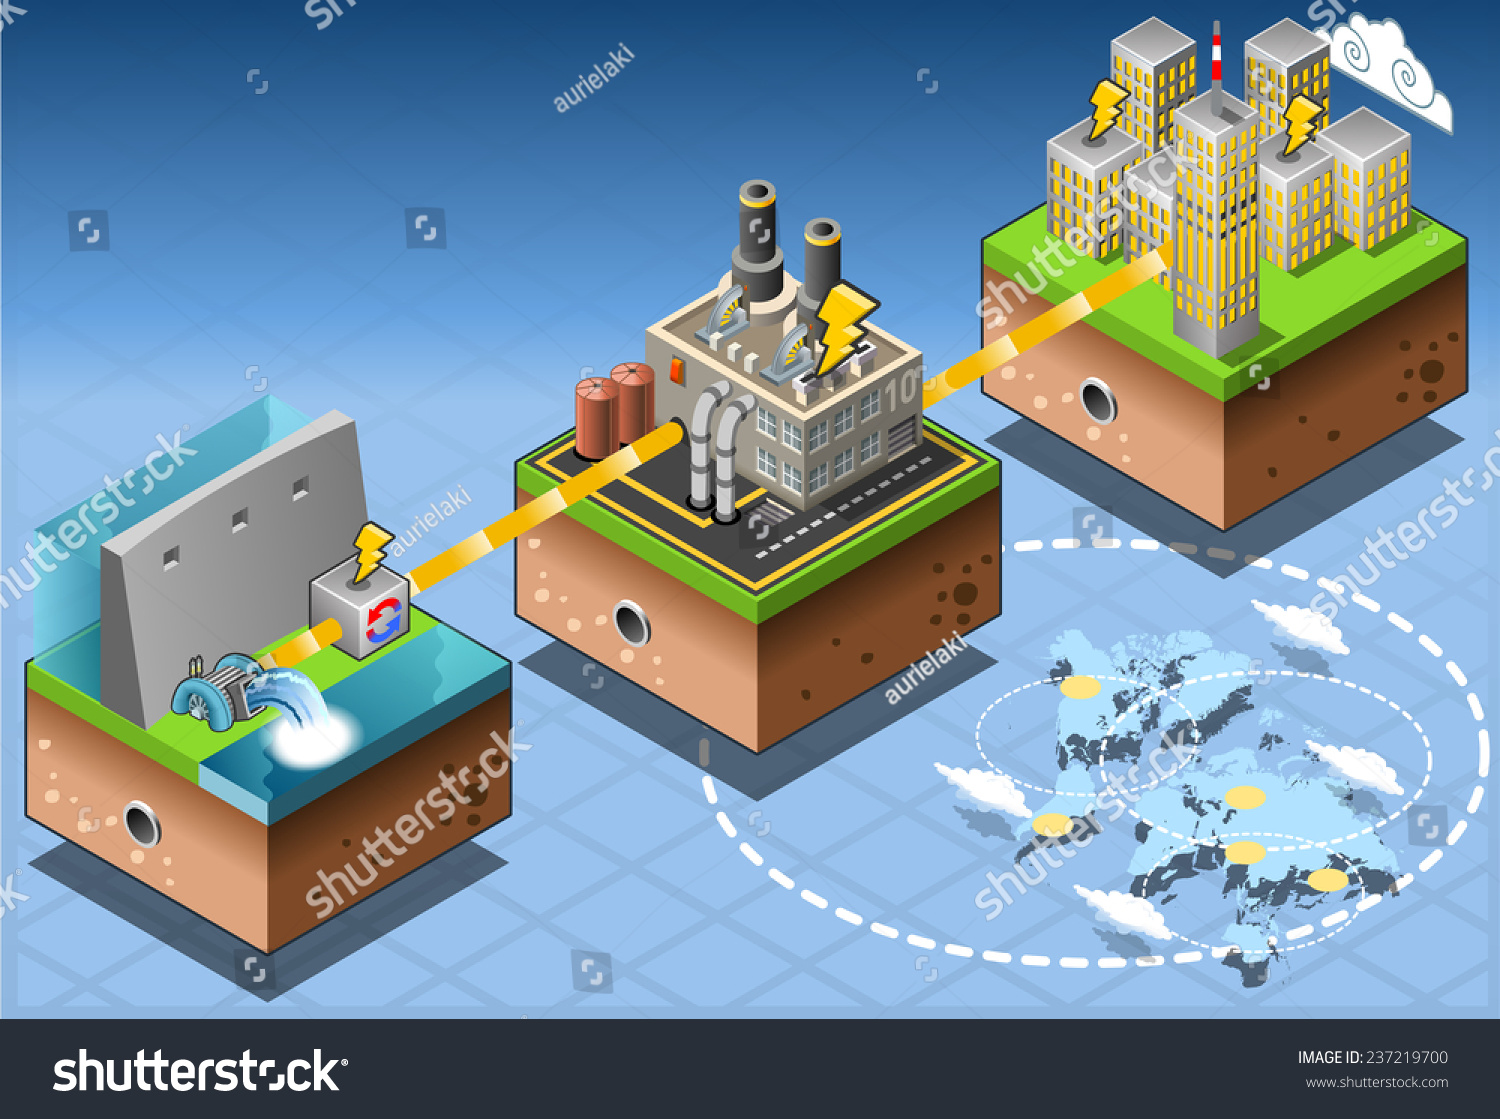 hight resolution of green energy ecology renewable energy hydroelectric dam source diagram isometric infographic hydroelectric water power alternative